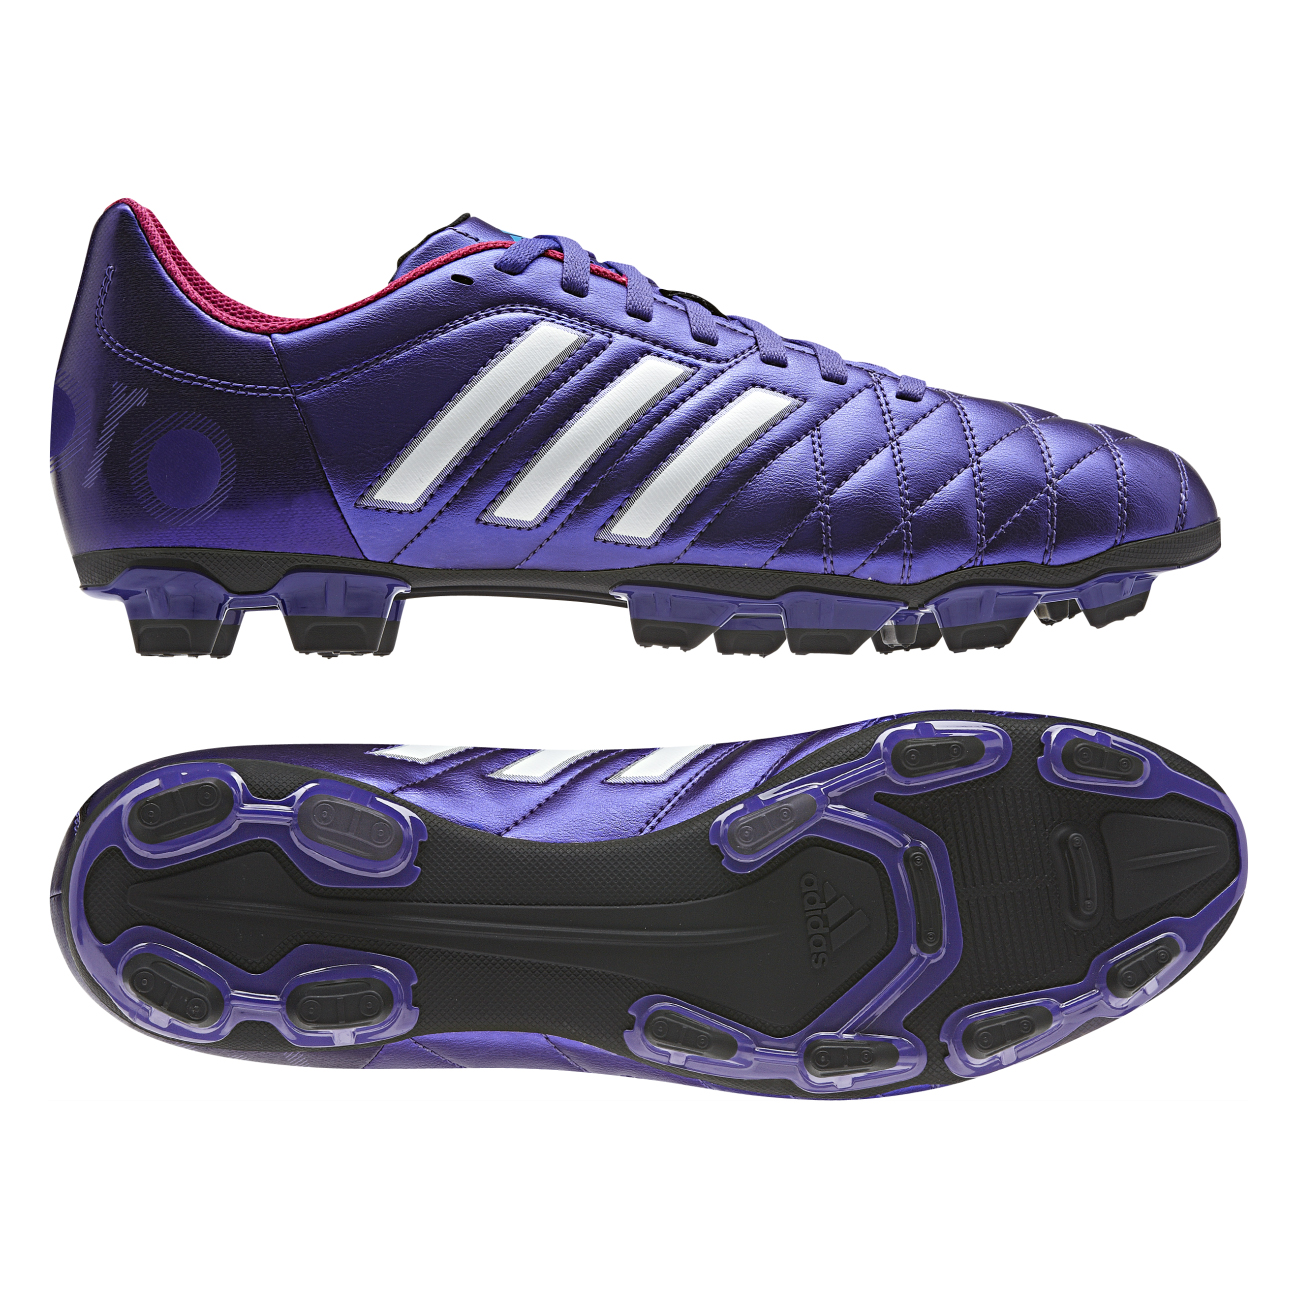 Adidas 11Questra TRX Firm Ground Football Boots Purple